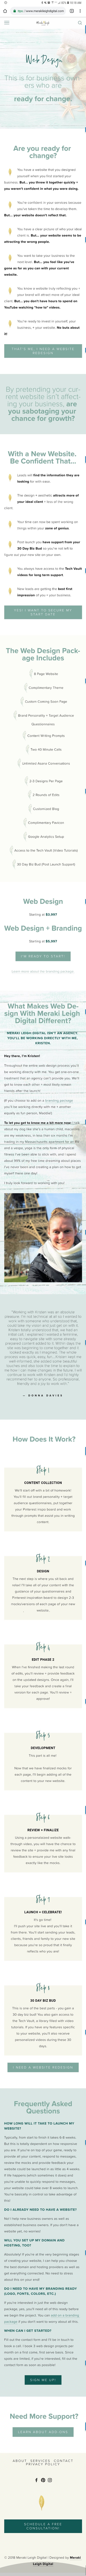 Kristen Leigh | WordPress Web Design Studio | Meraki Leigh Digital | Full Mobile Web Design Page